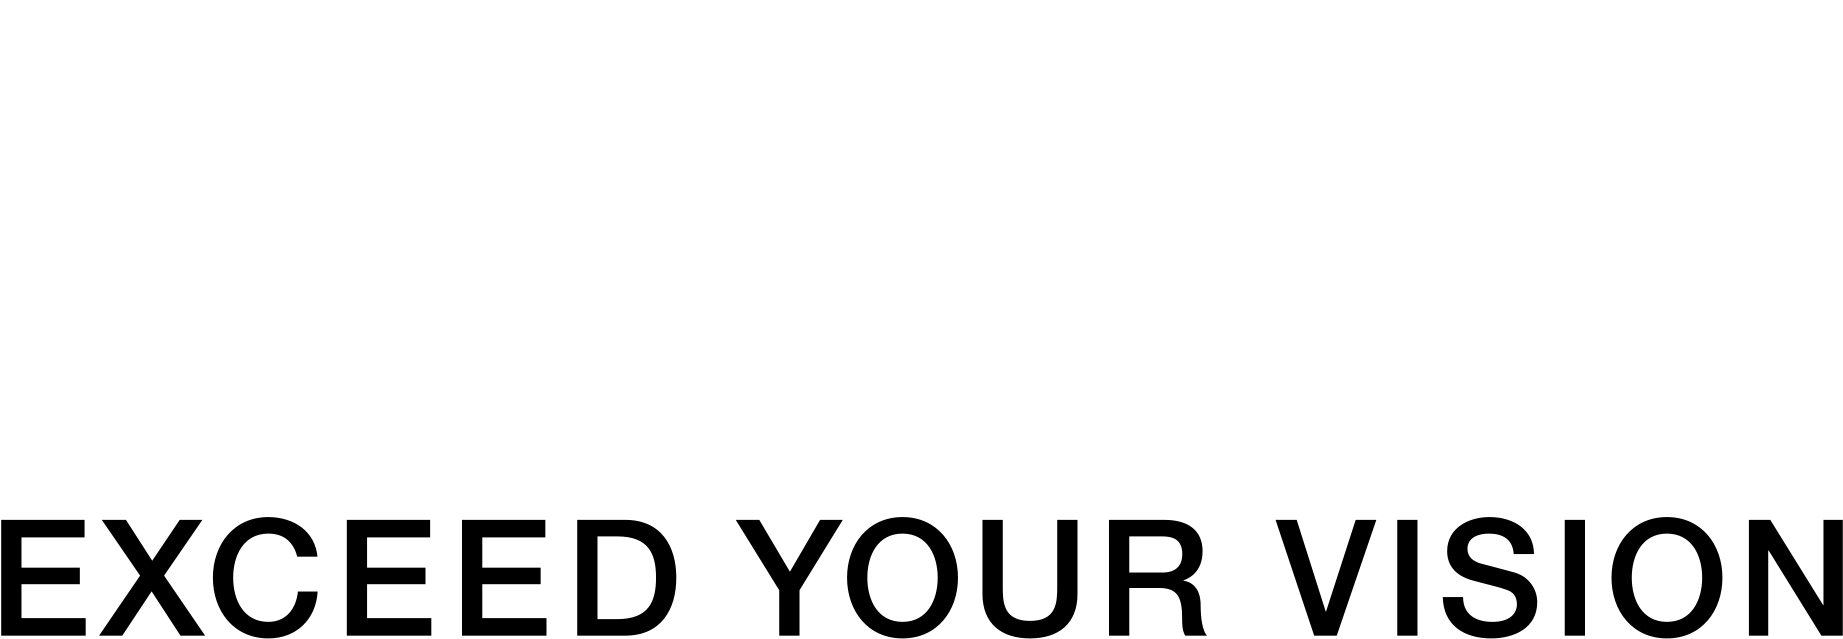 Download Epson Logo Black And